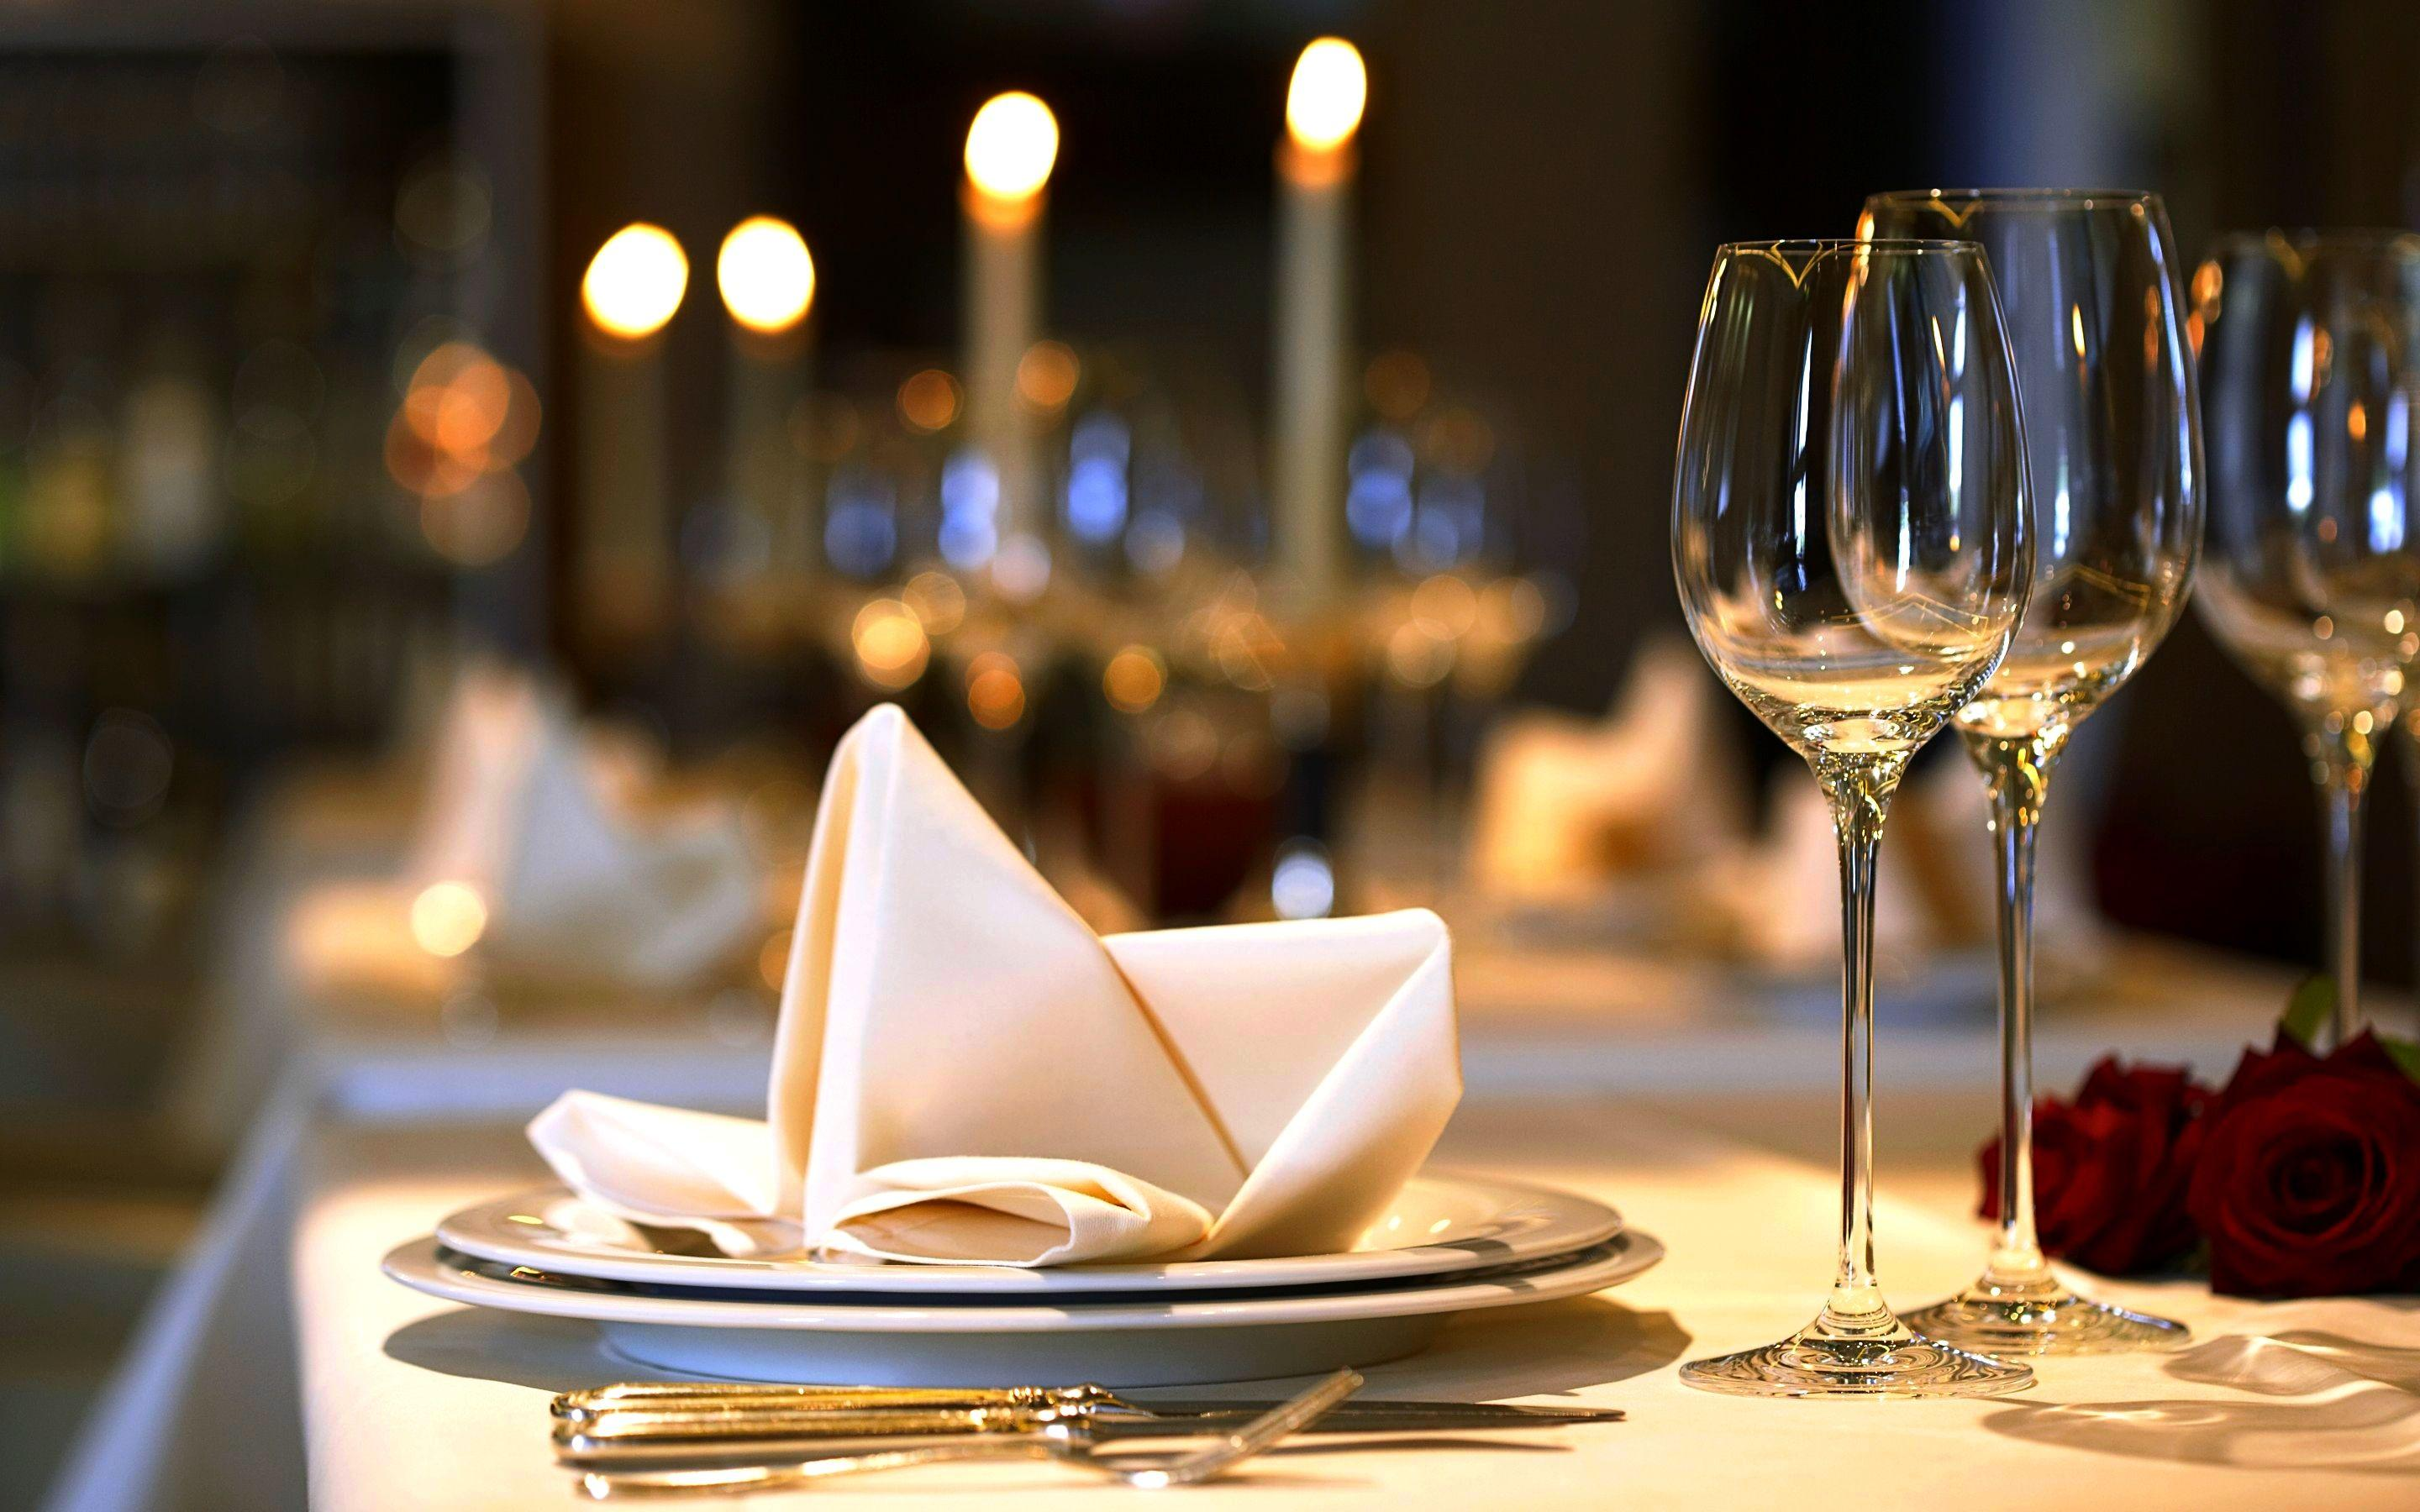 Hotel Reservation Pics Photos Thanksgiving Dinner Wallpapers Hd